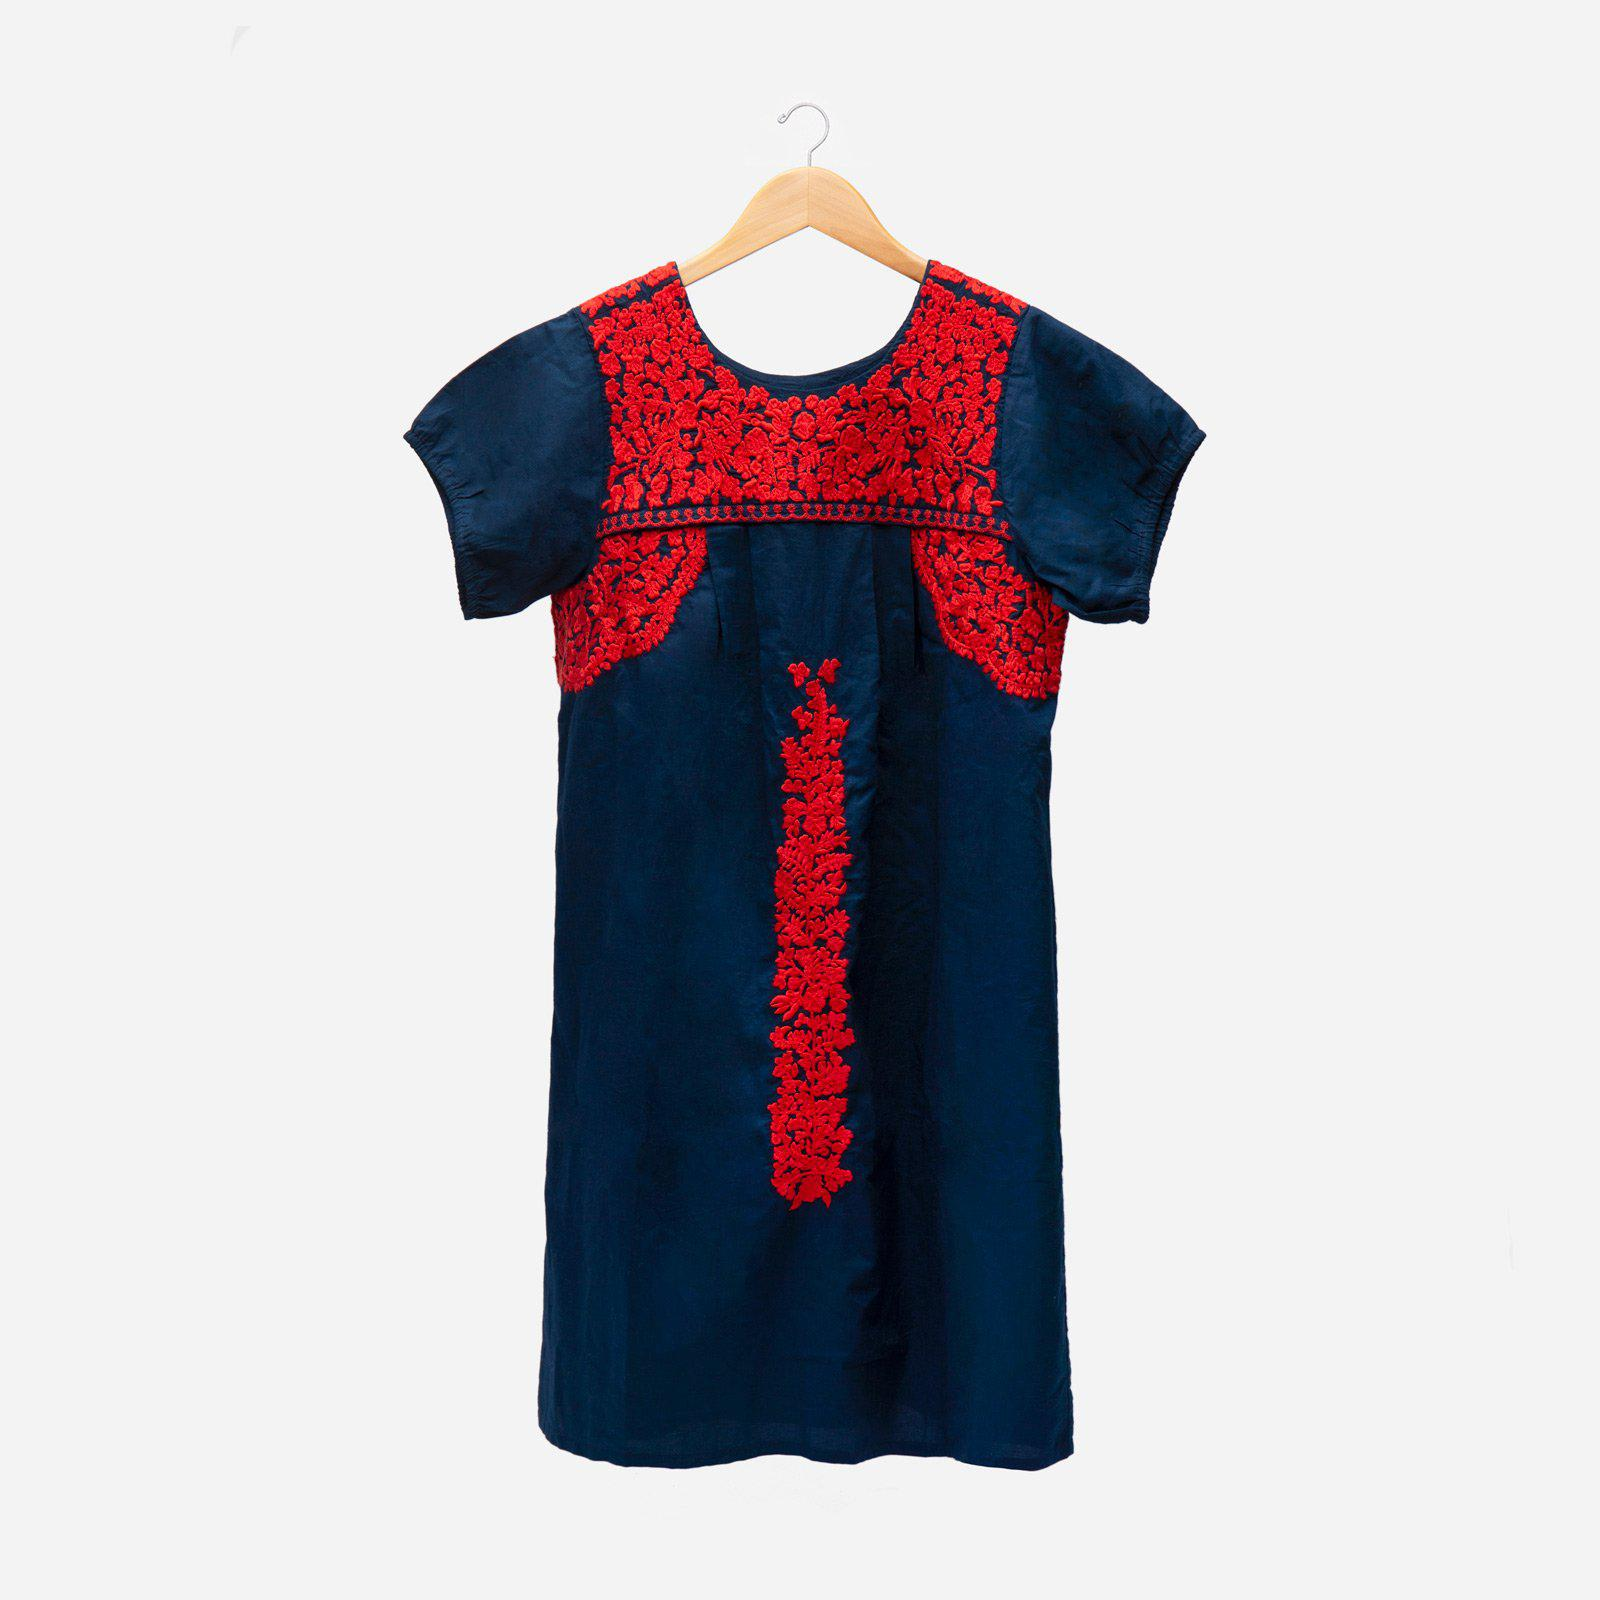 Floral Embroidered Lace Dress Navy Red 2